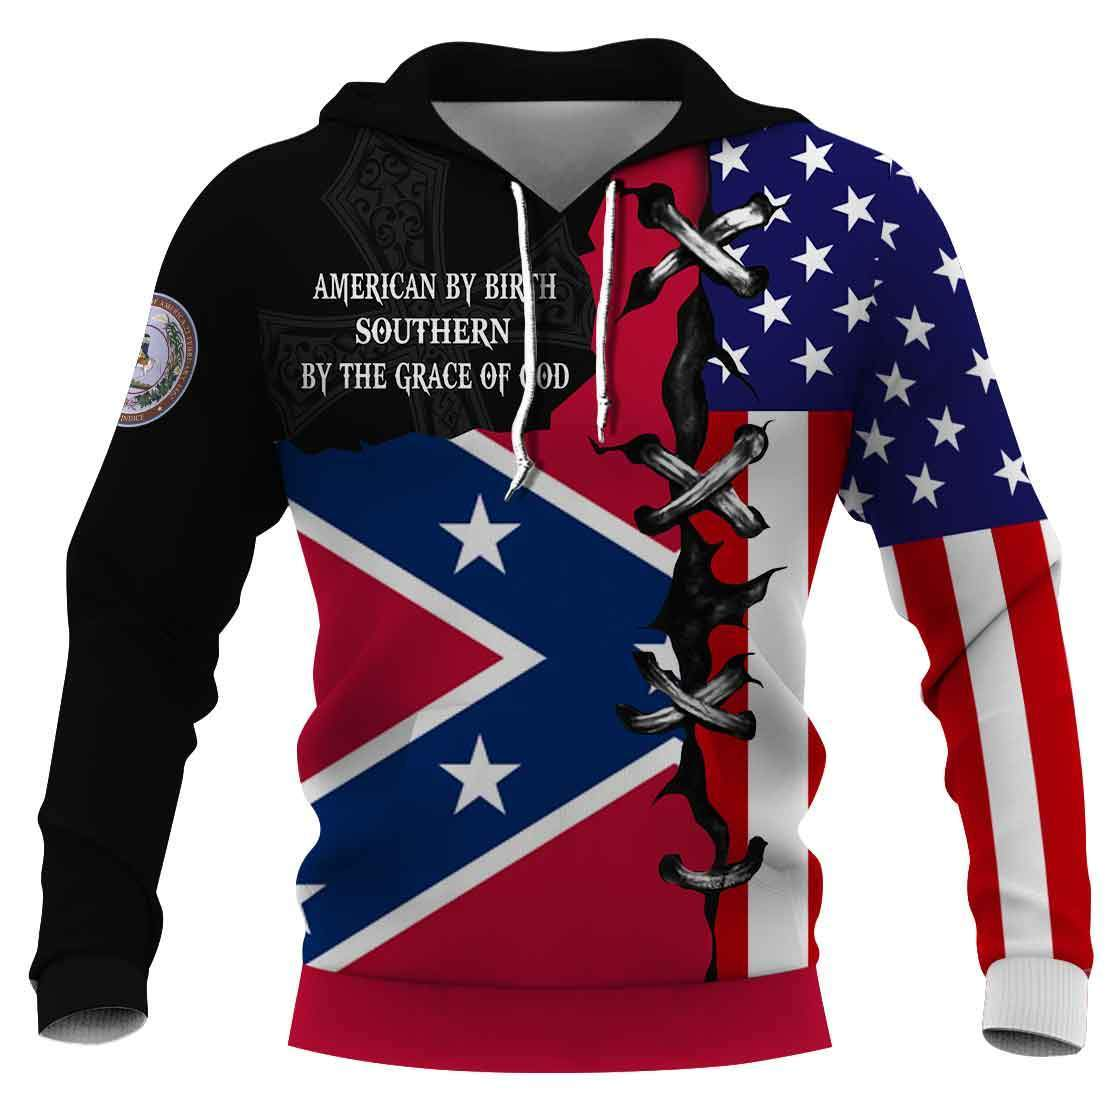 American by birth southern by the grace of god full printing shirtAmerican by birth southern by the grace of god full printing hoodie